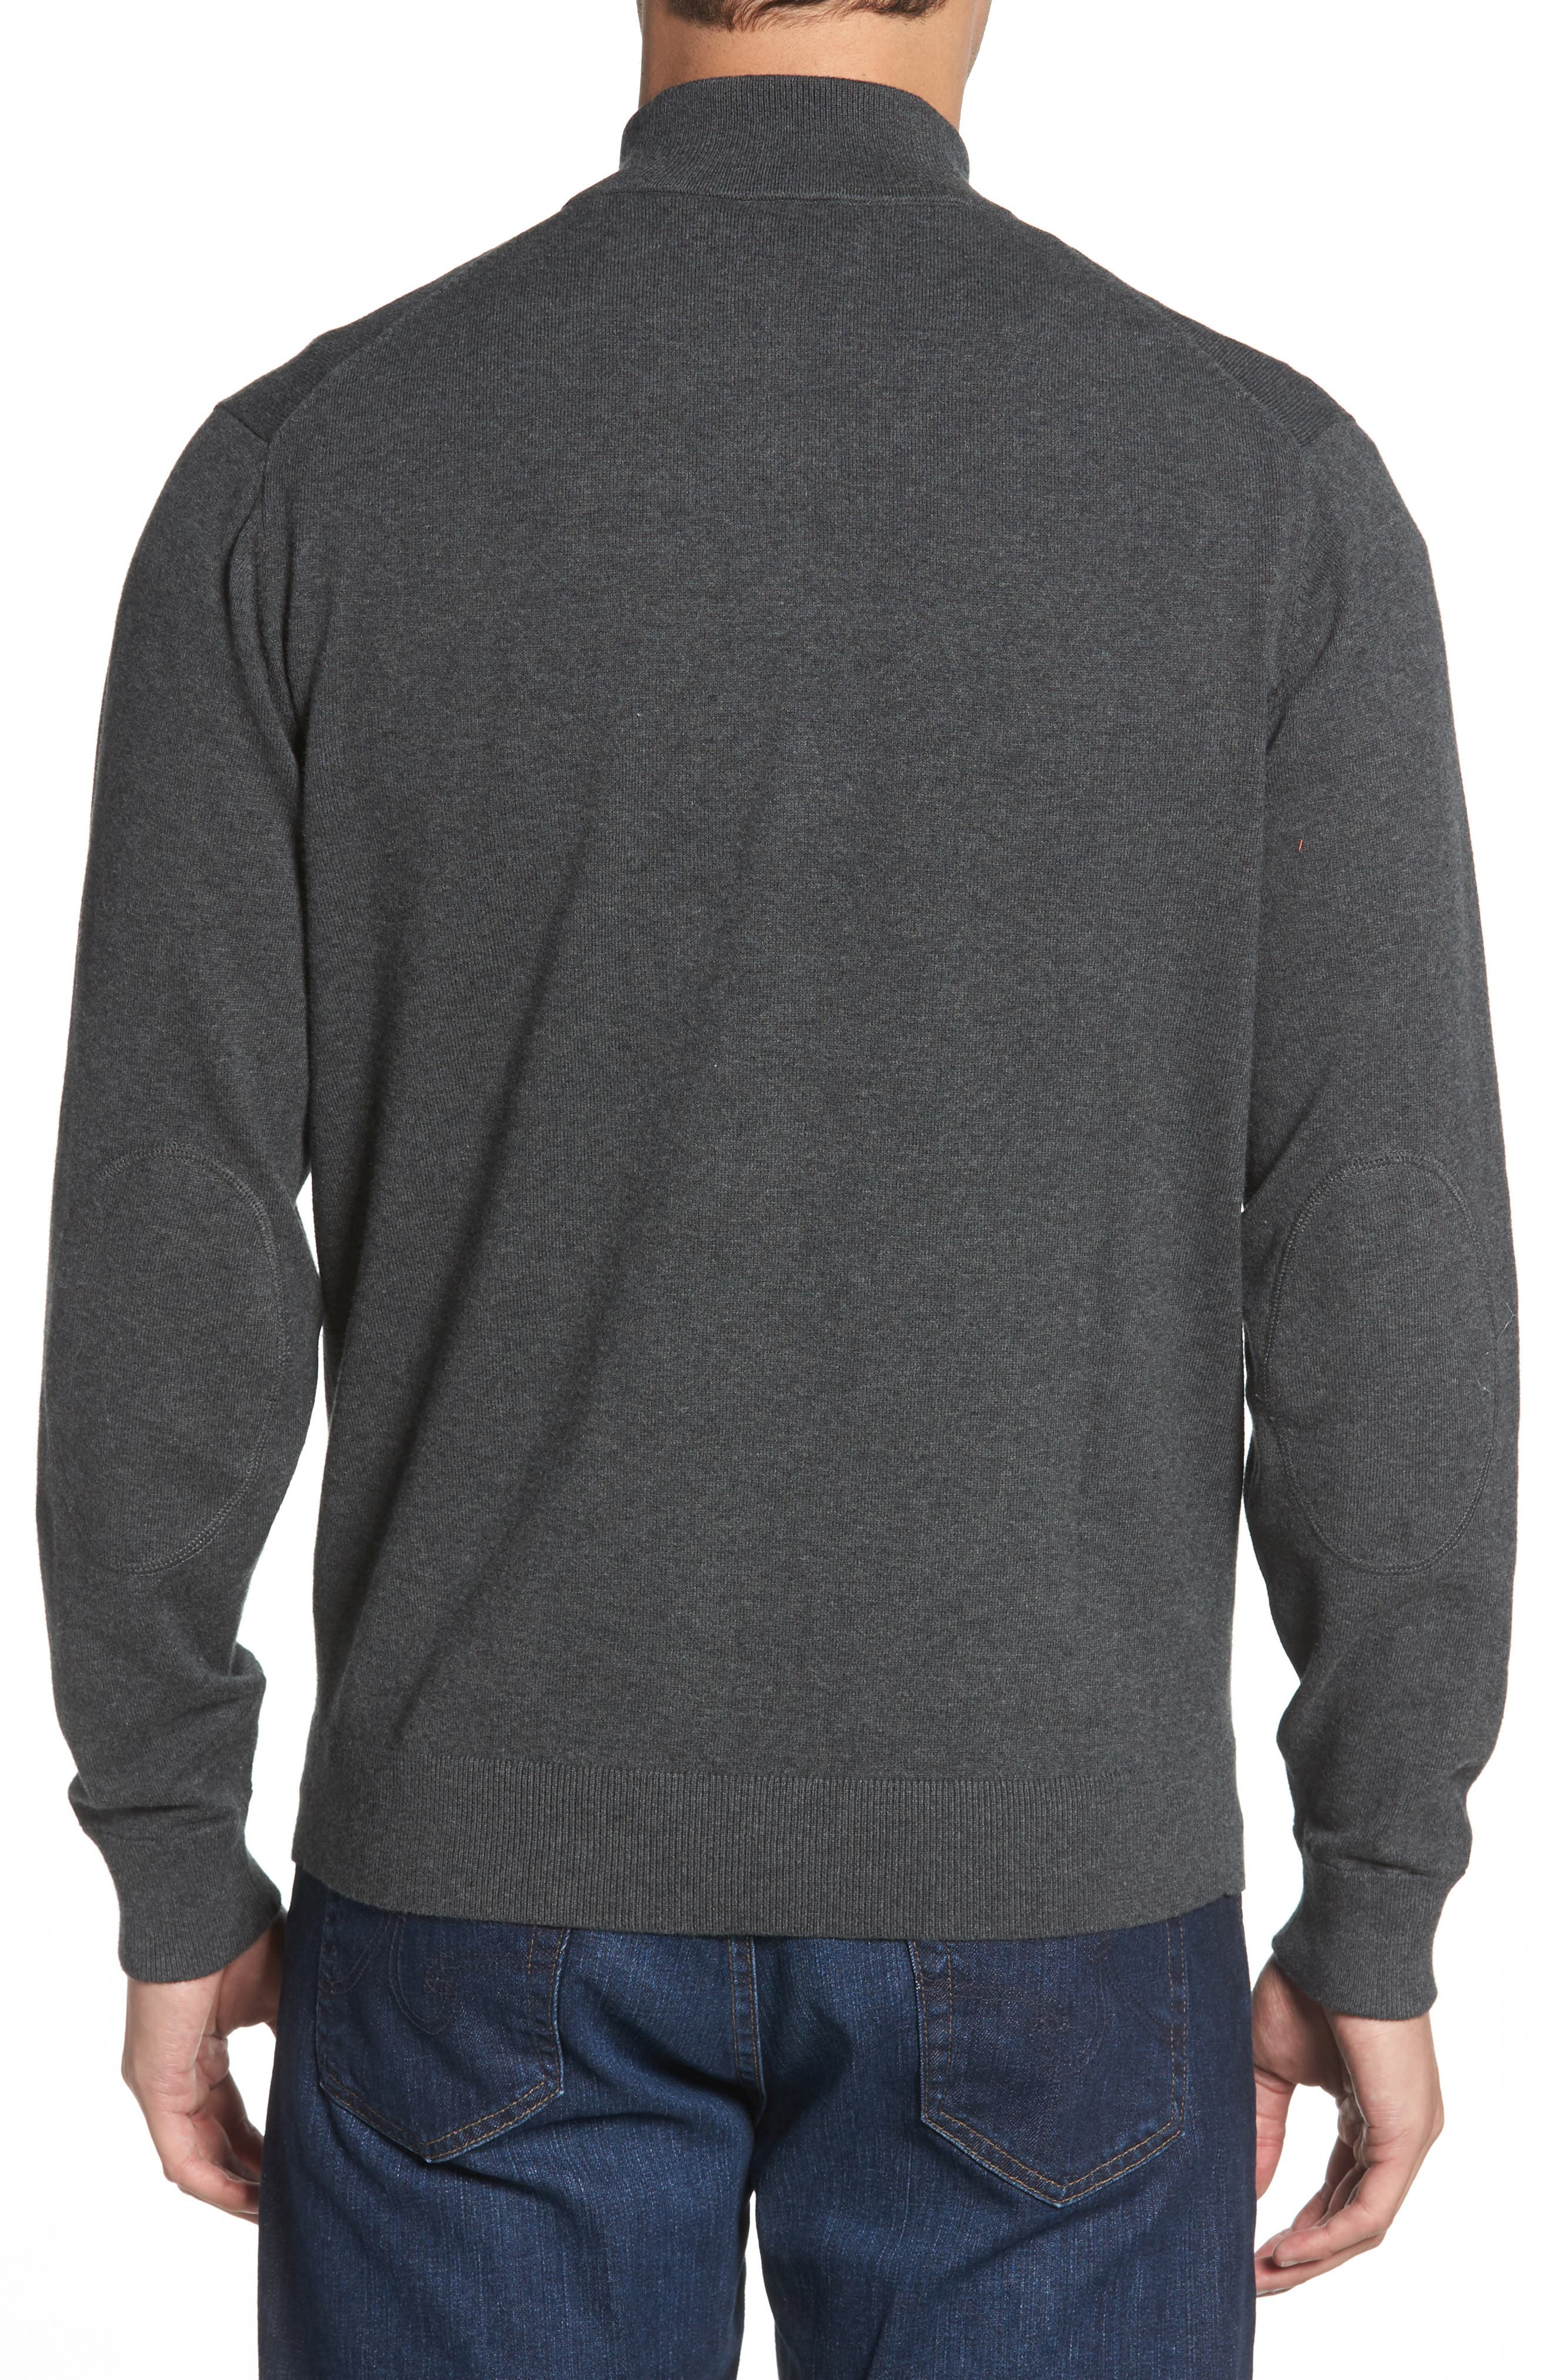 New England Patriots - Lakemont Regular Fit Quarter Zip Sweater,                             Alternate thumbnail 2, color,                             CHARCOAL HEATHER